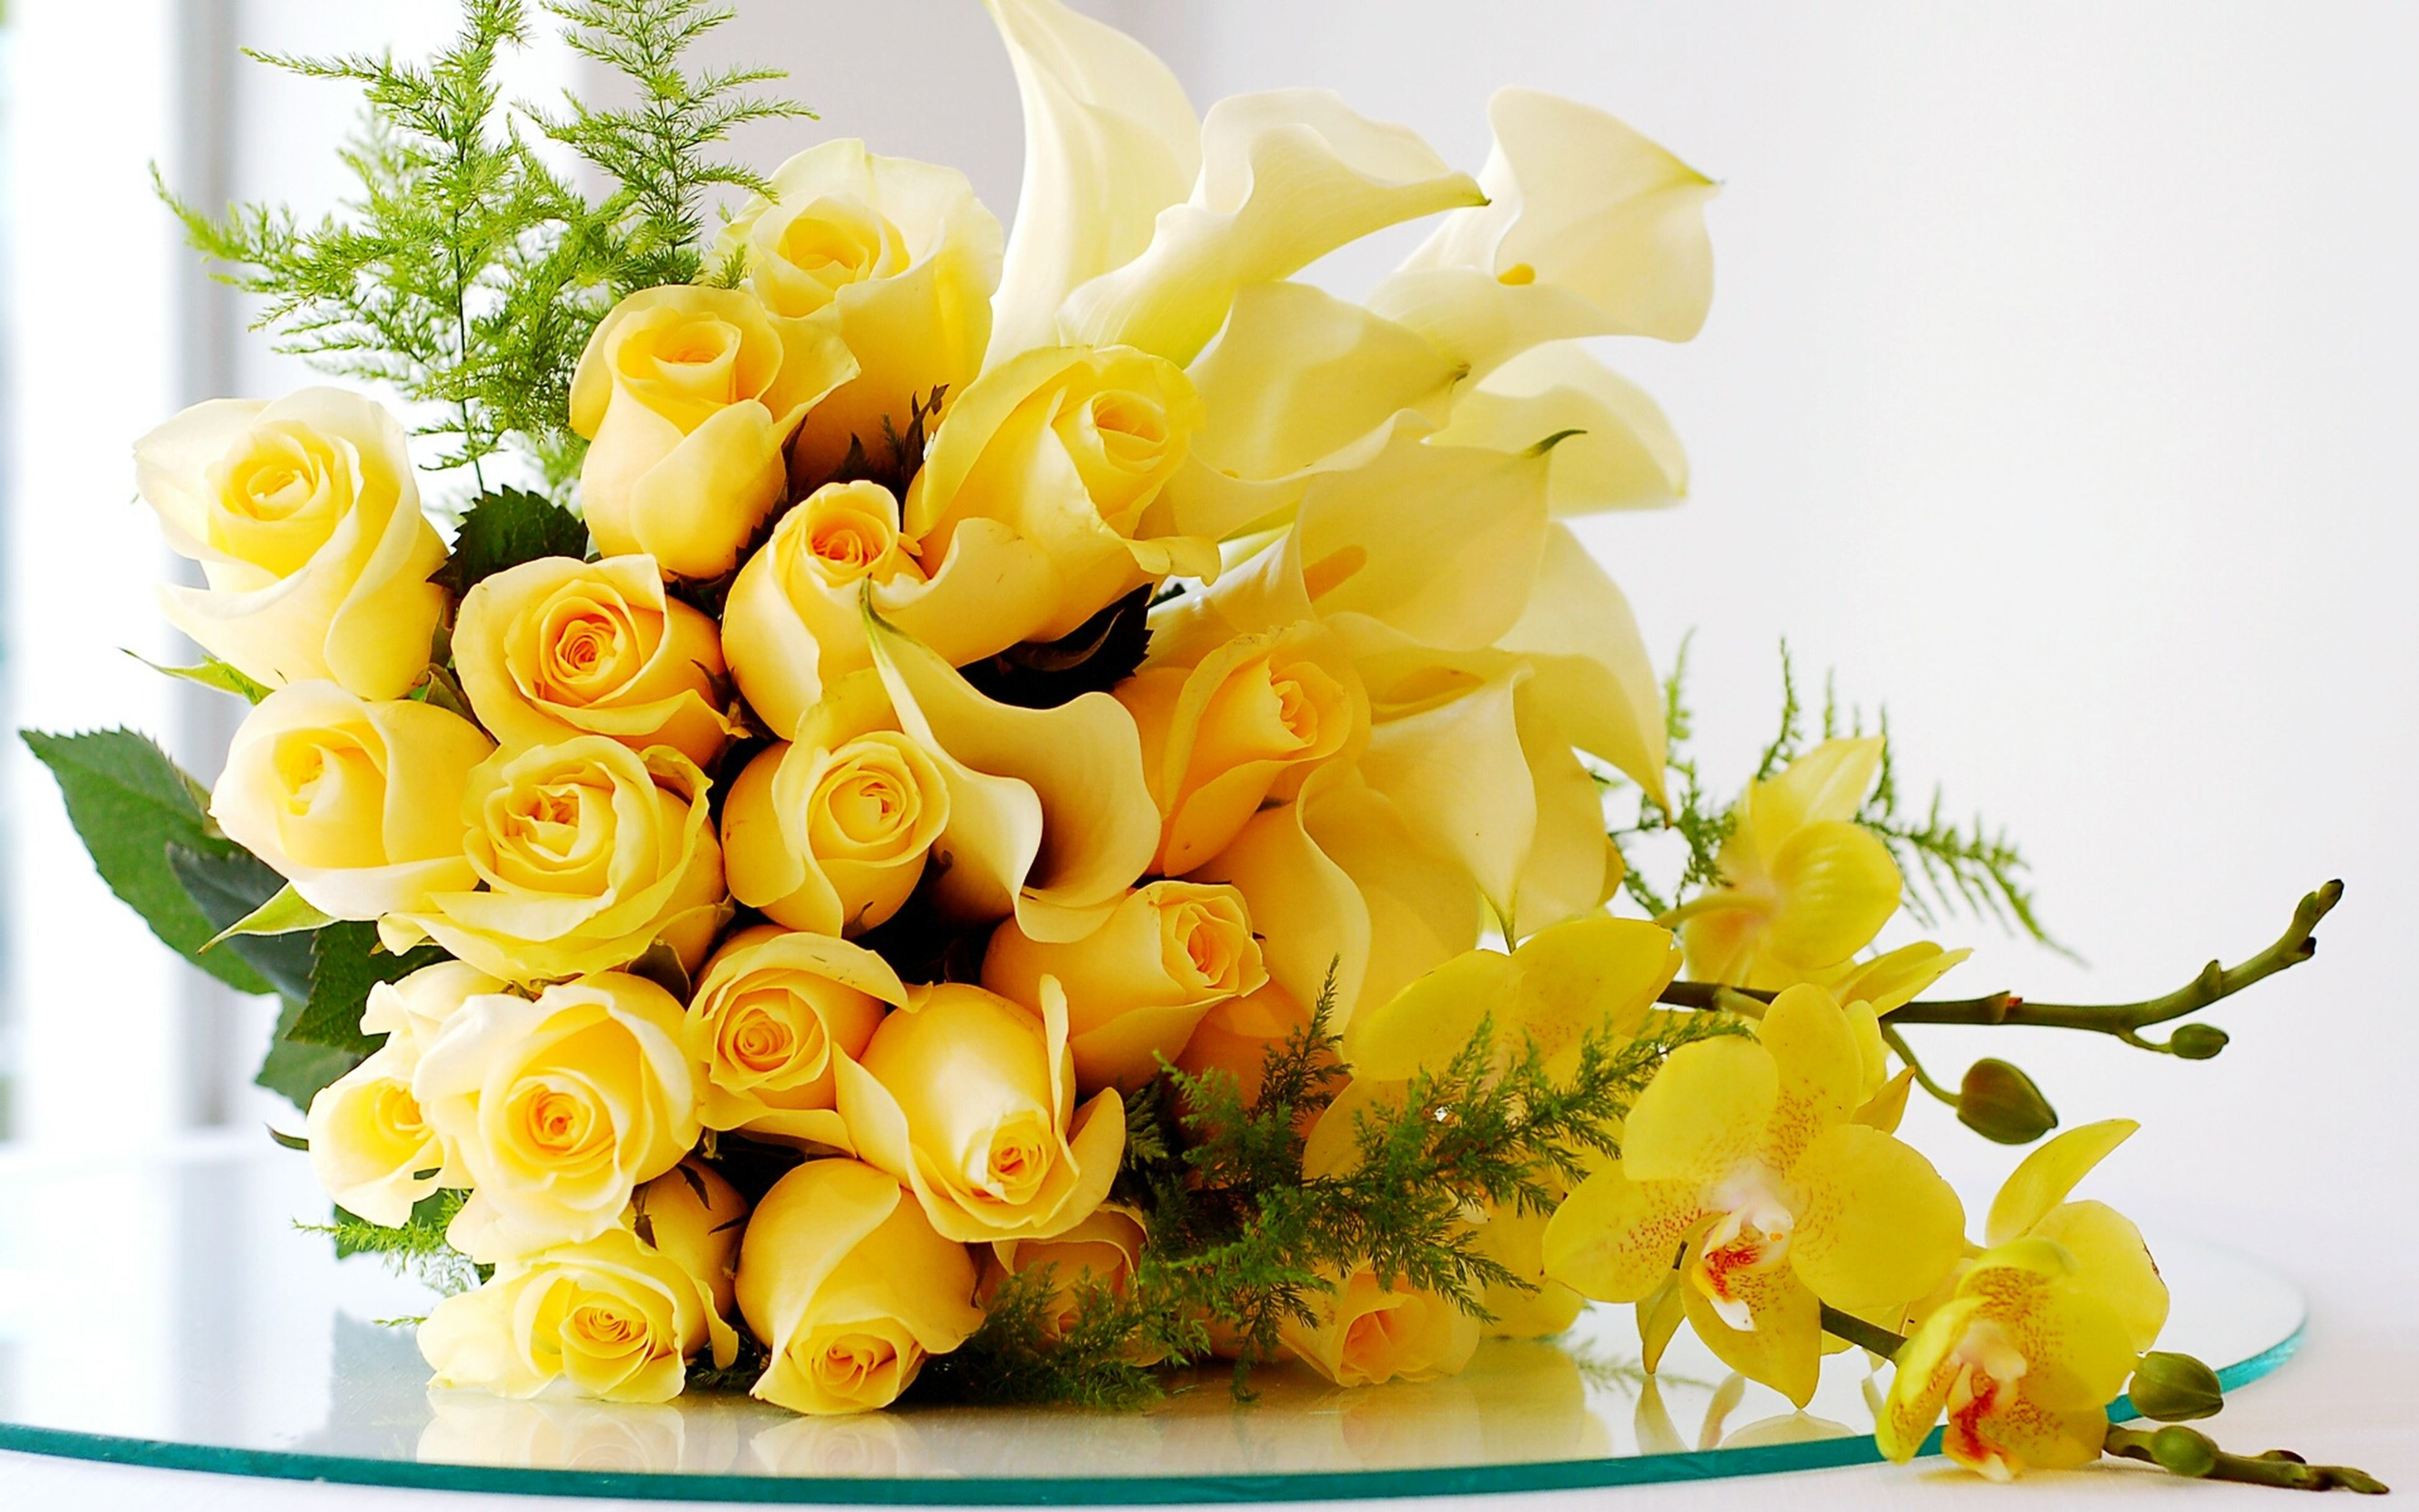 flower, freshness, fragility, petal, yellow, flower head, indoors, beauty in nature, vase, growth, nature, bunch of flowers, bouquet, close-up, blooming, flower arrangement, plant, white color, decoration, no people